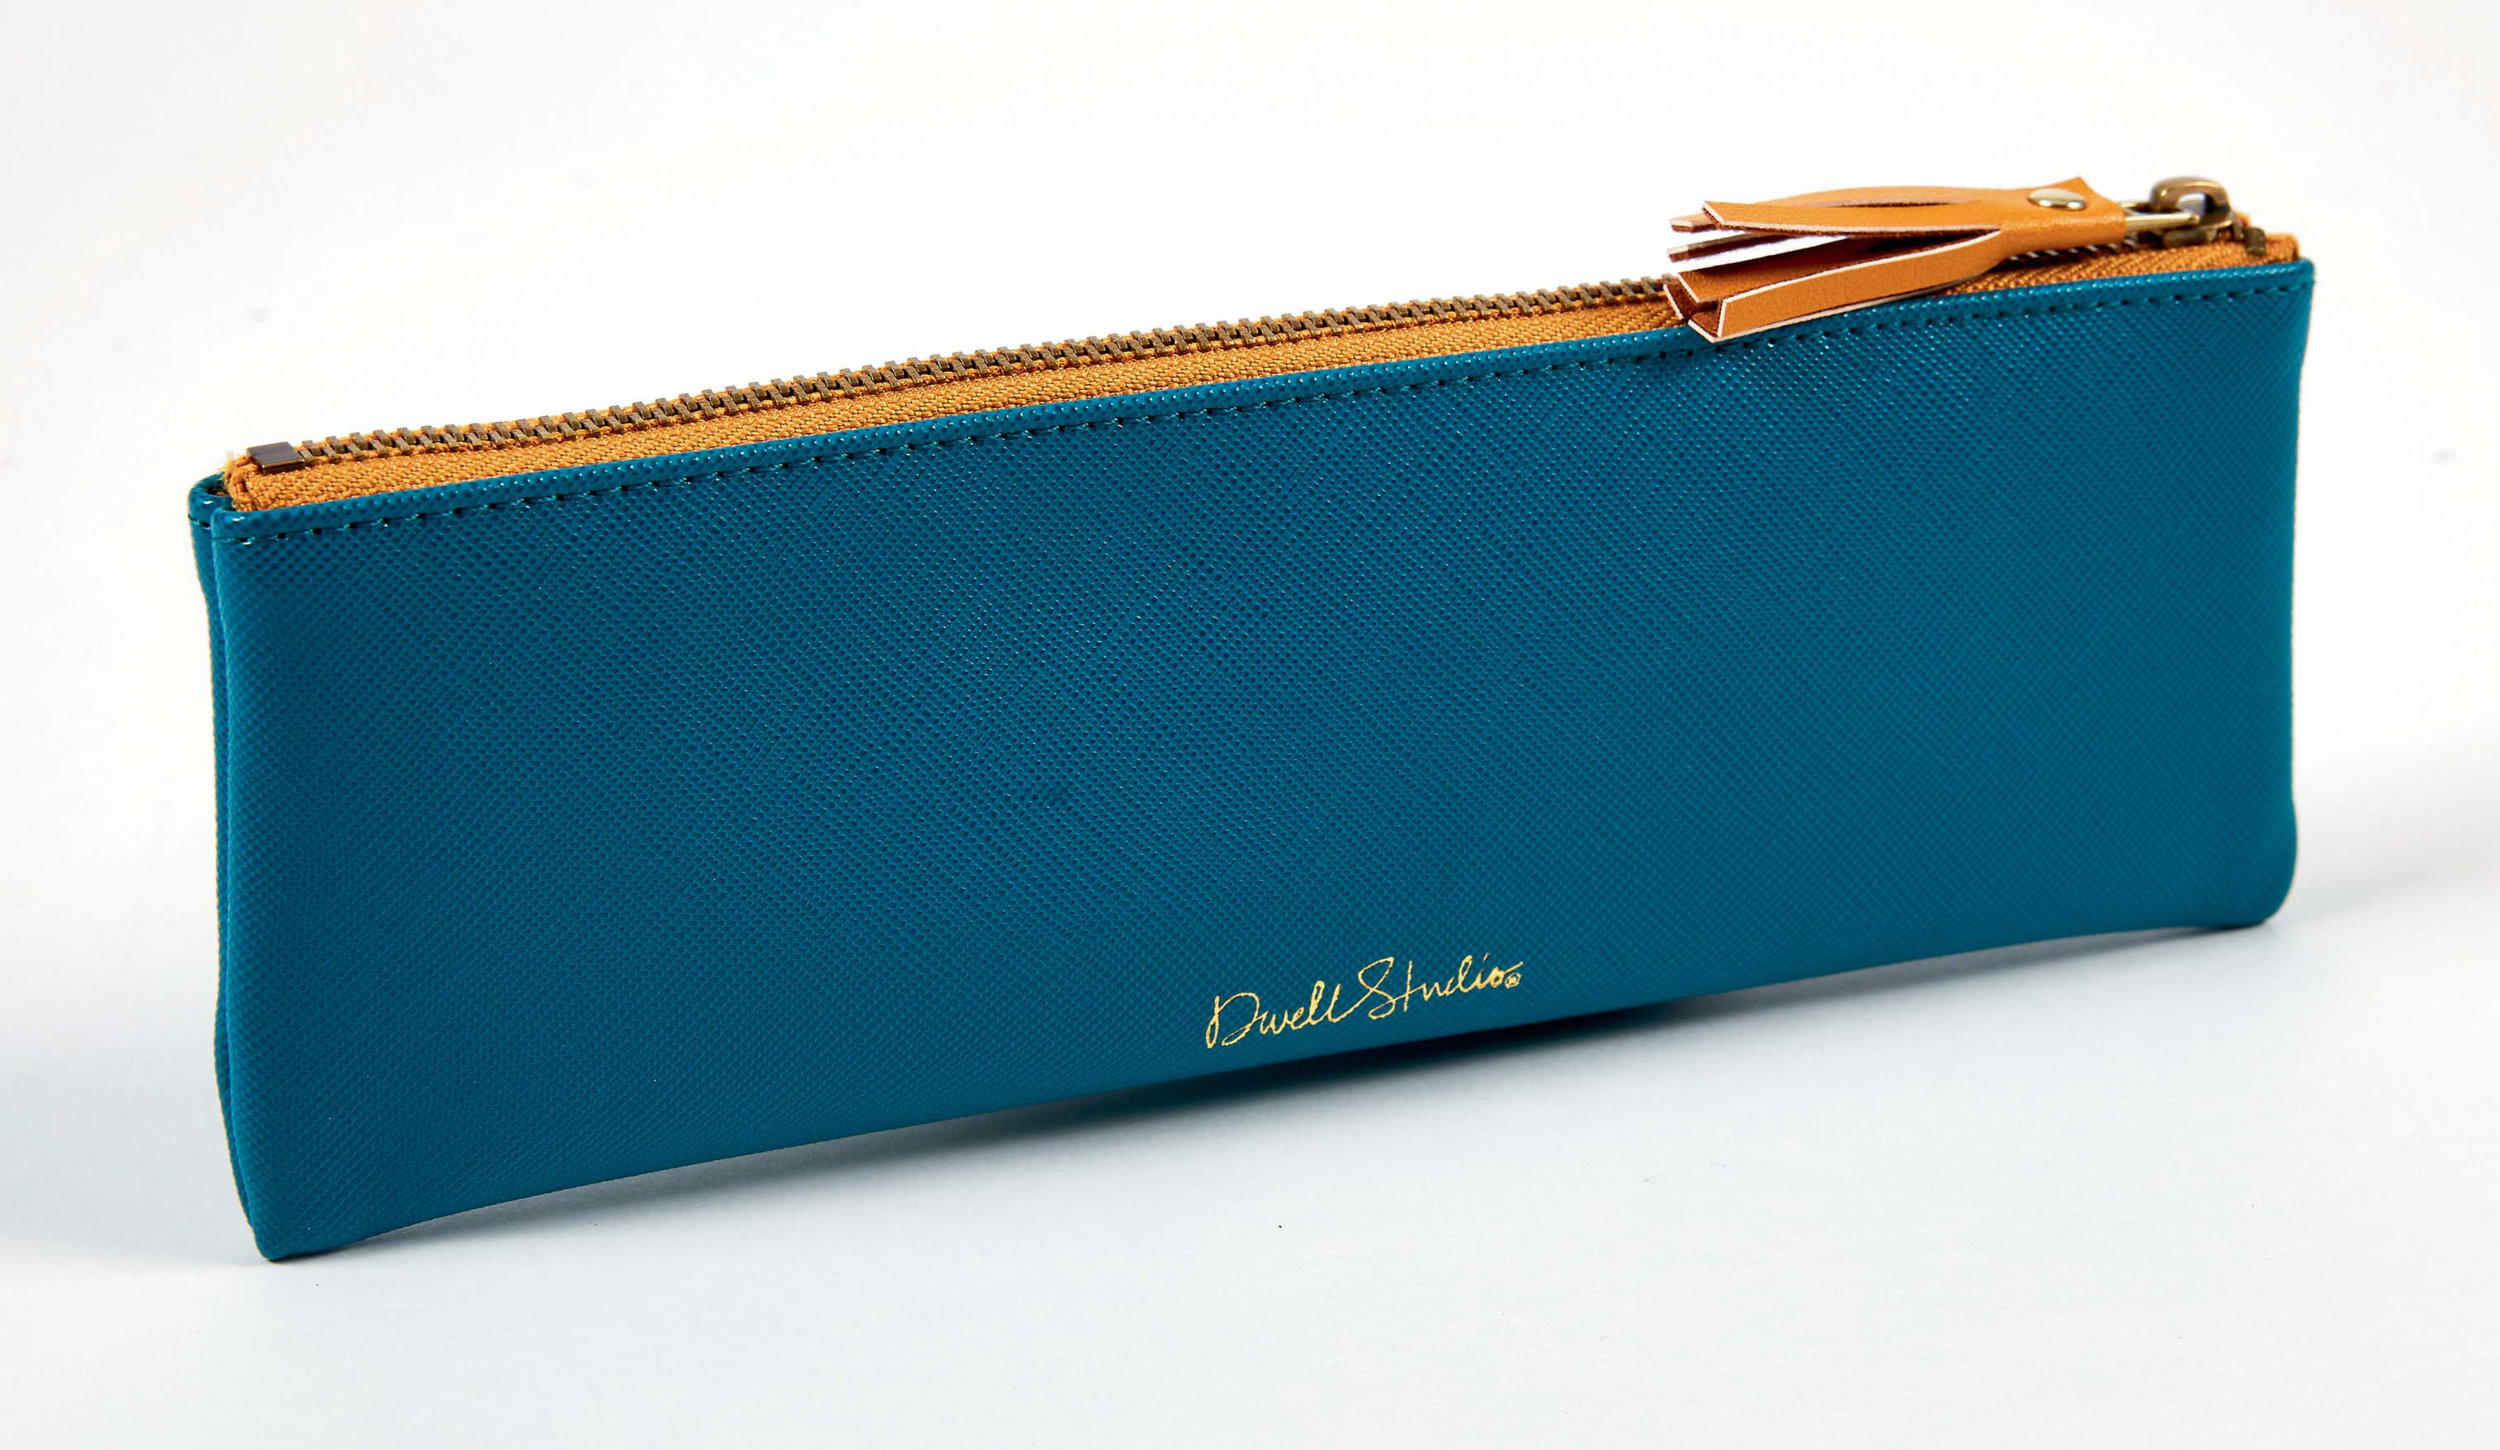 DS small accessories faux pouch dark teal.jpg